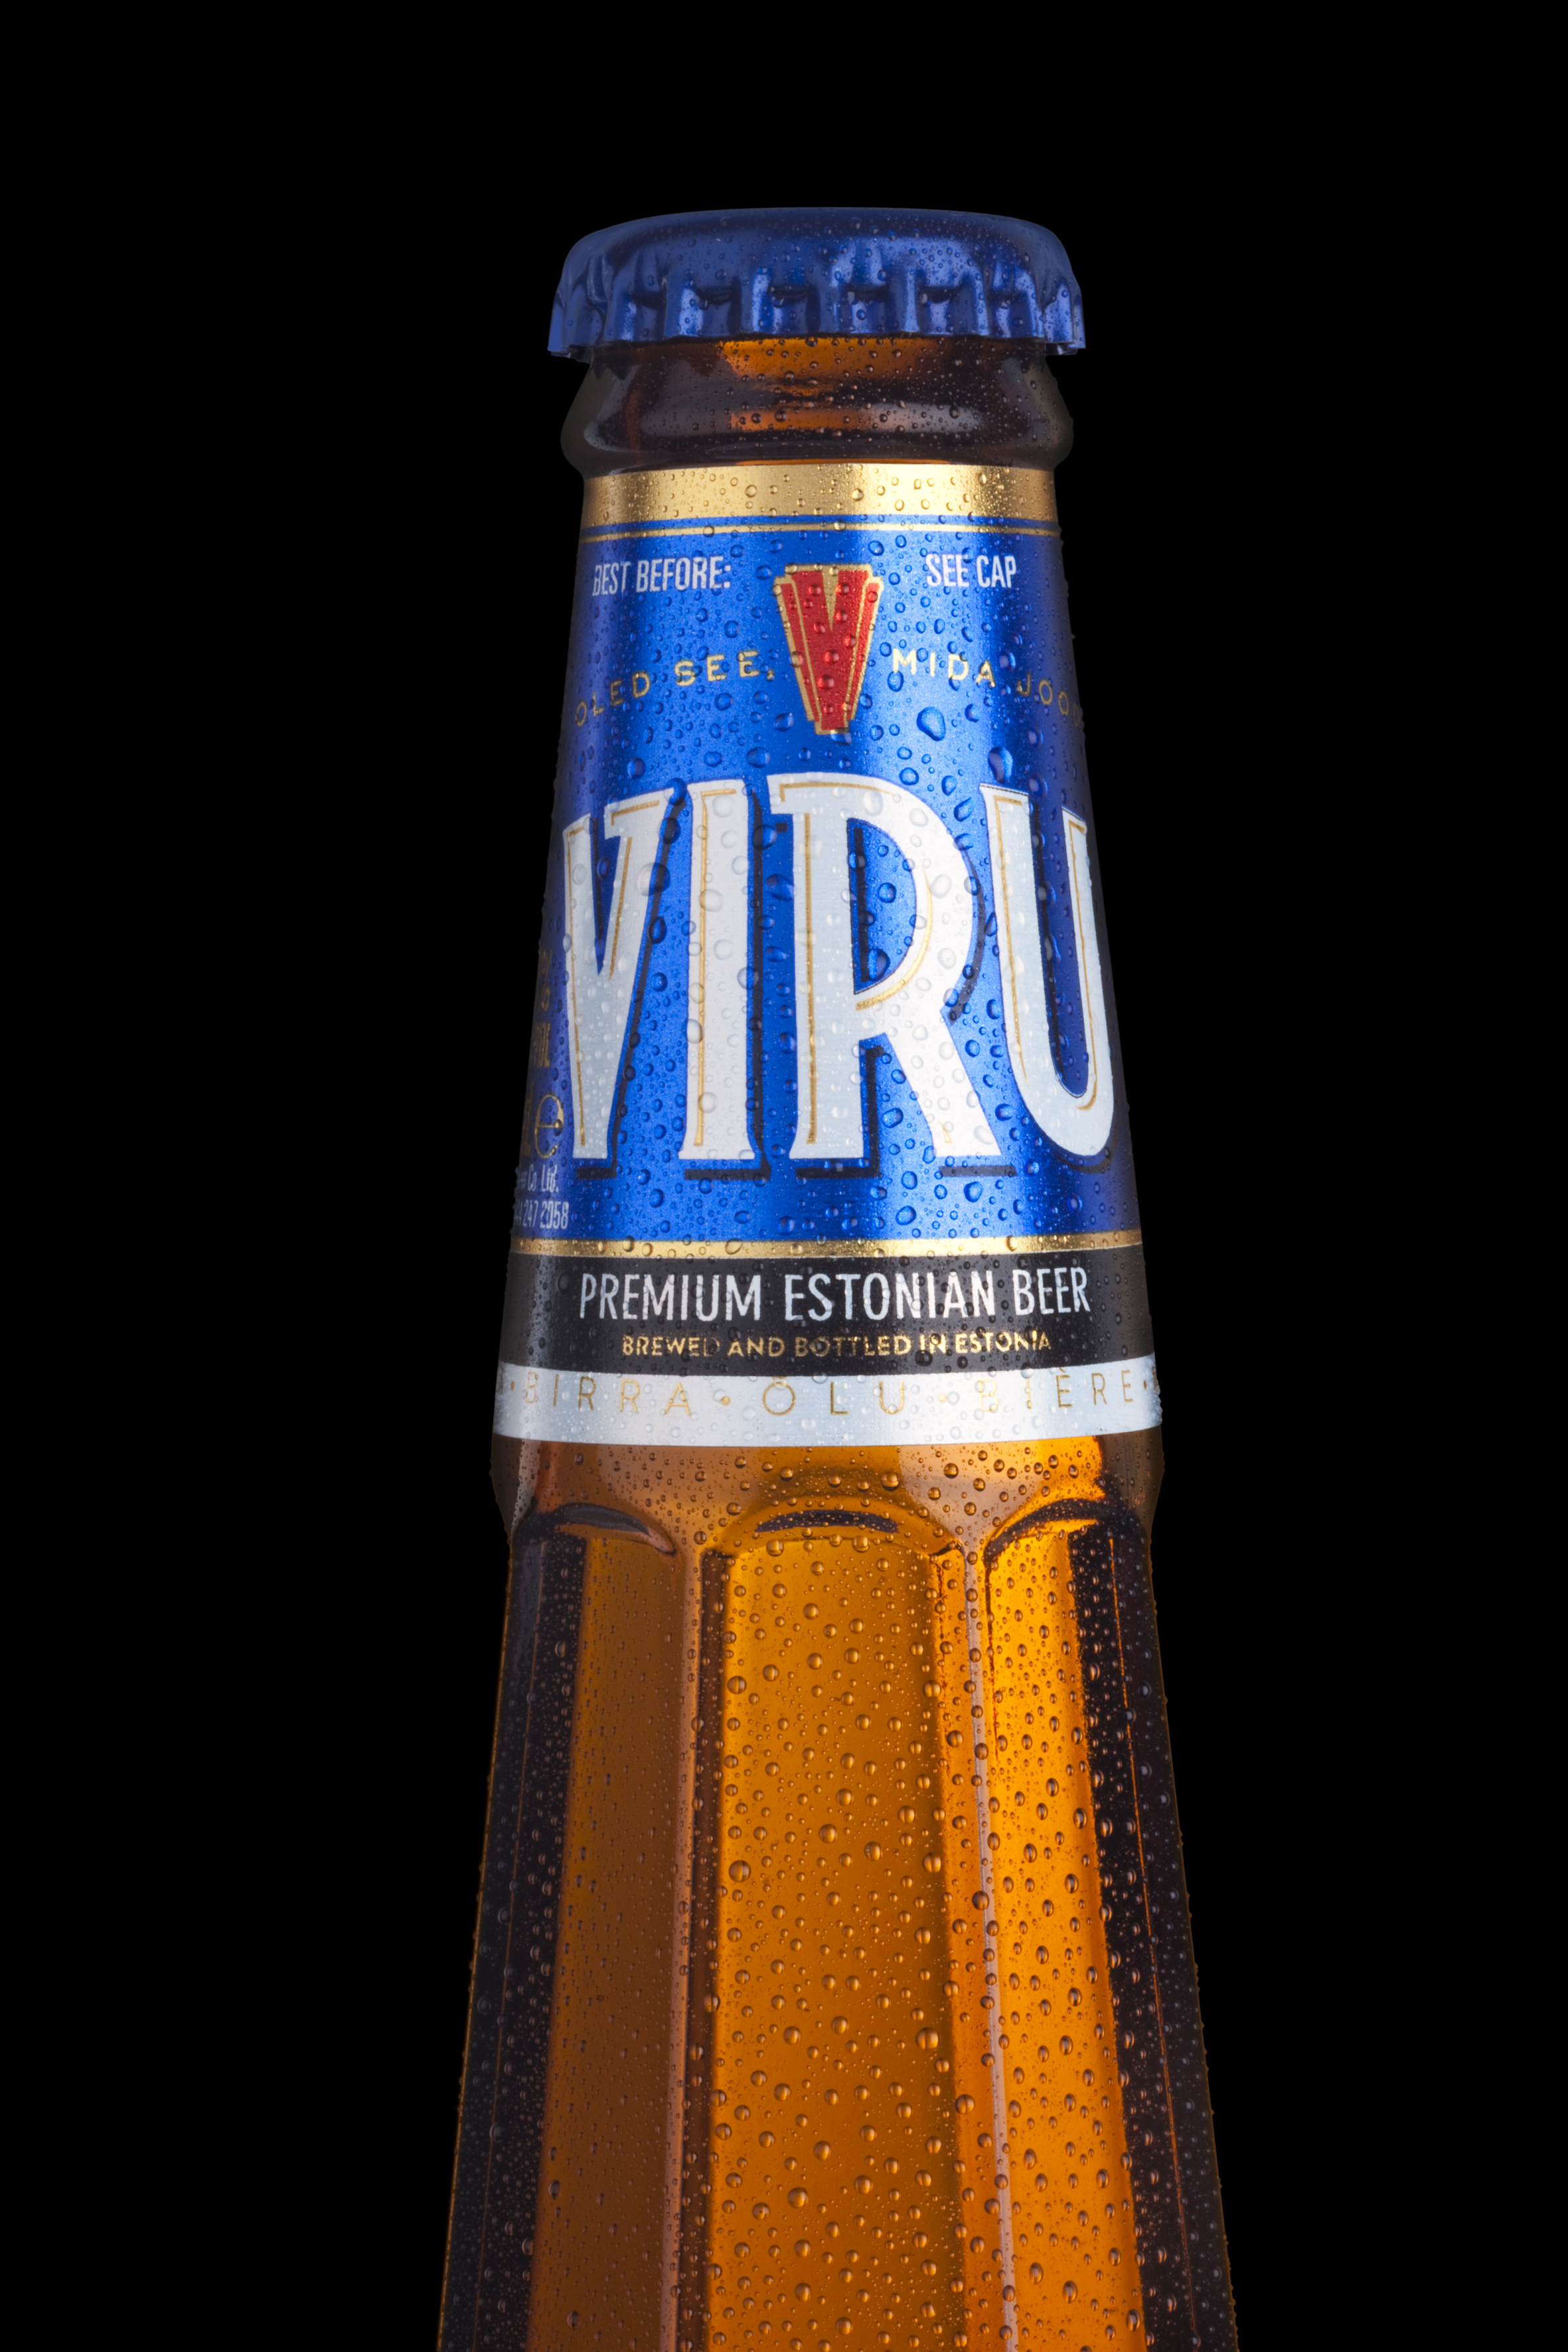 packaging / viru beer